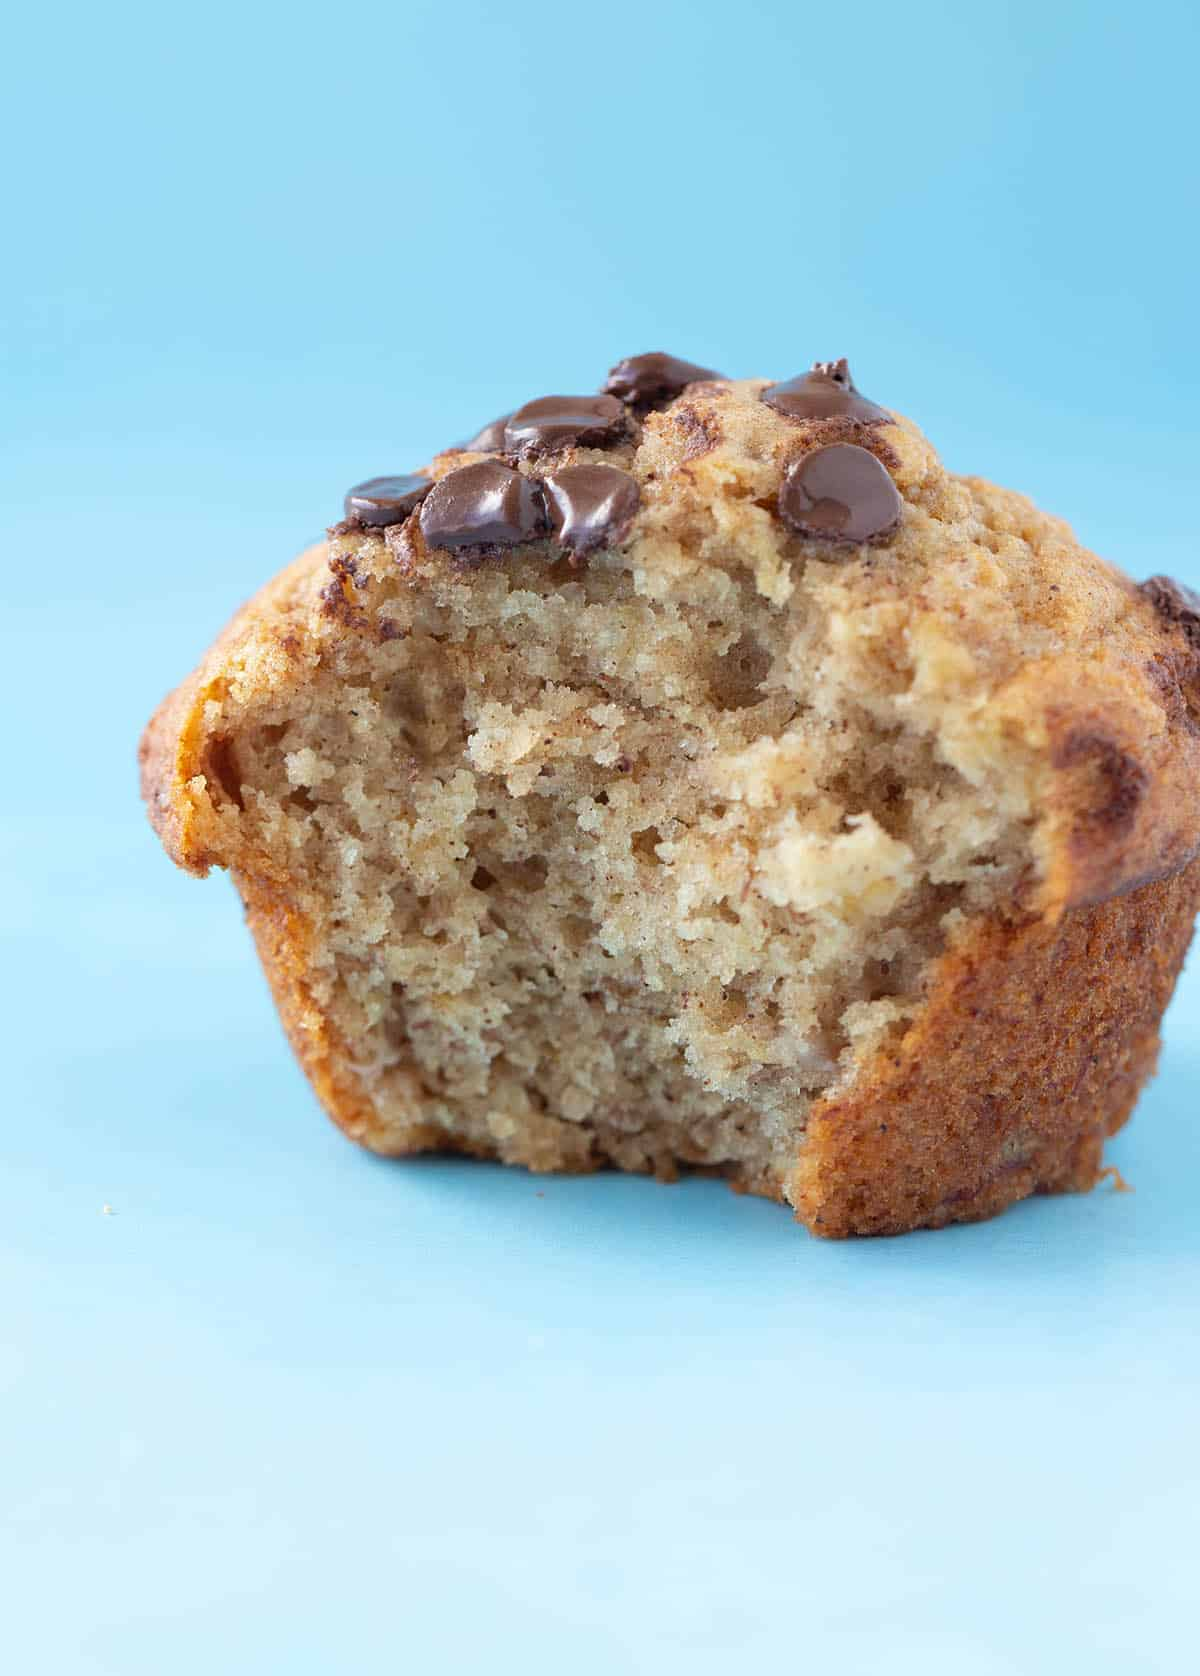 Close up of a homemade banana muffin with a bite taken out of it.